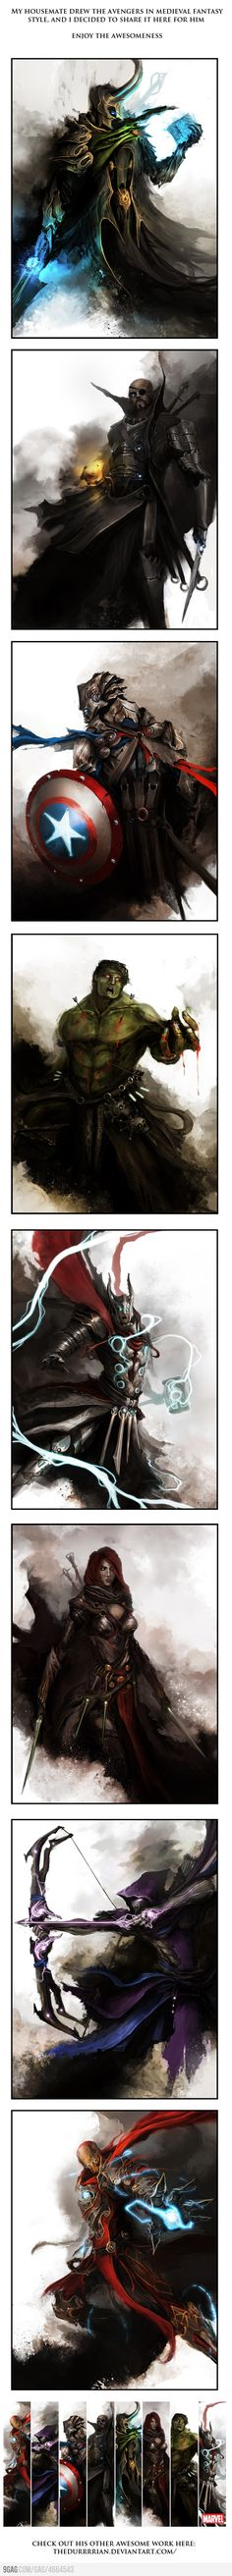 Avengers go all Medieval Style - amazing artwork!